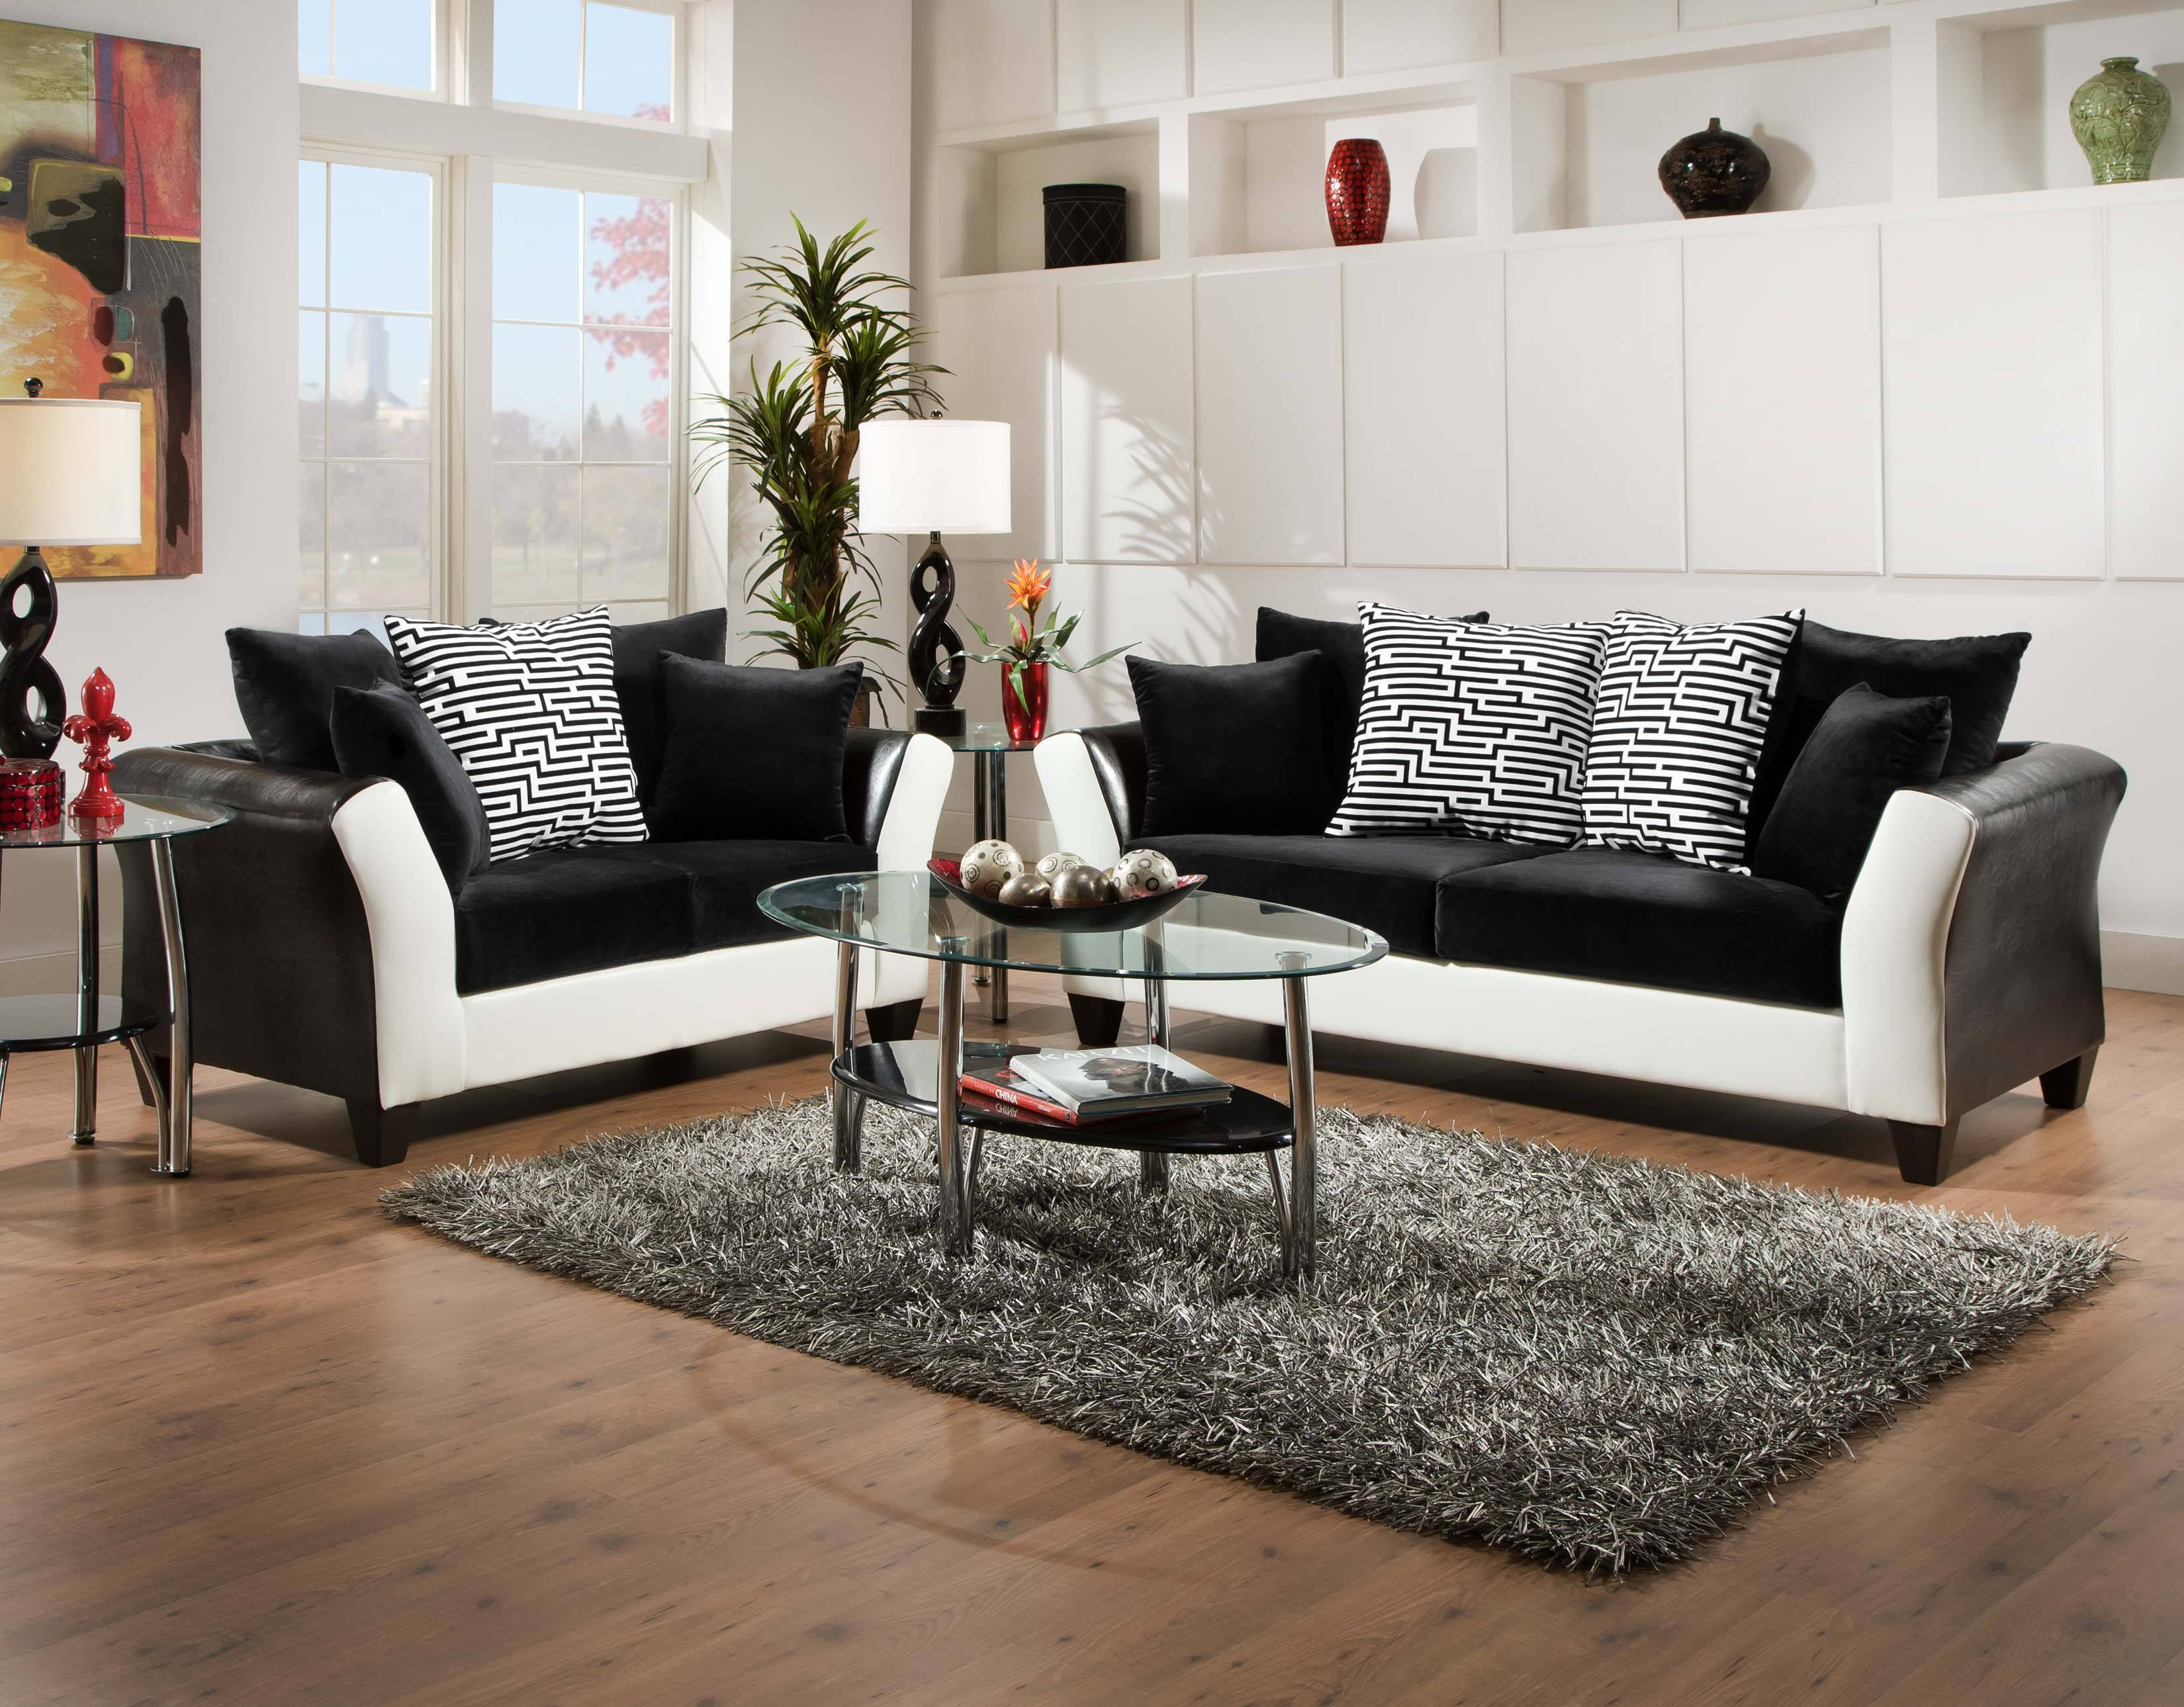 Featured Friday ZigZag Sofa Loveseat Set